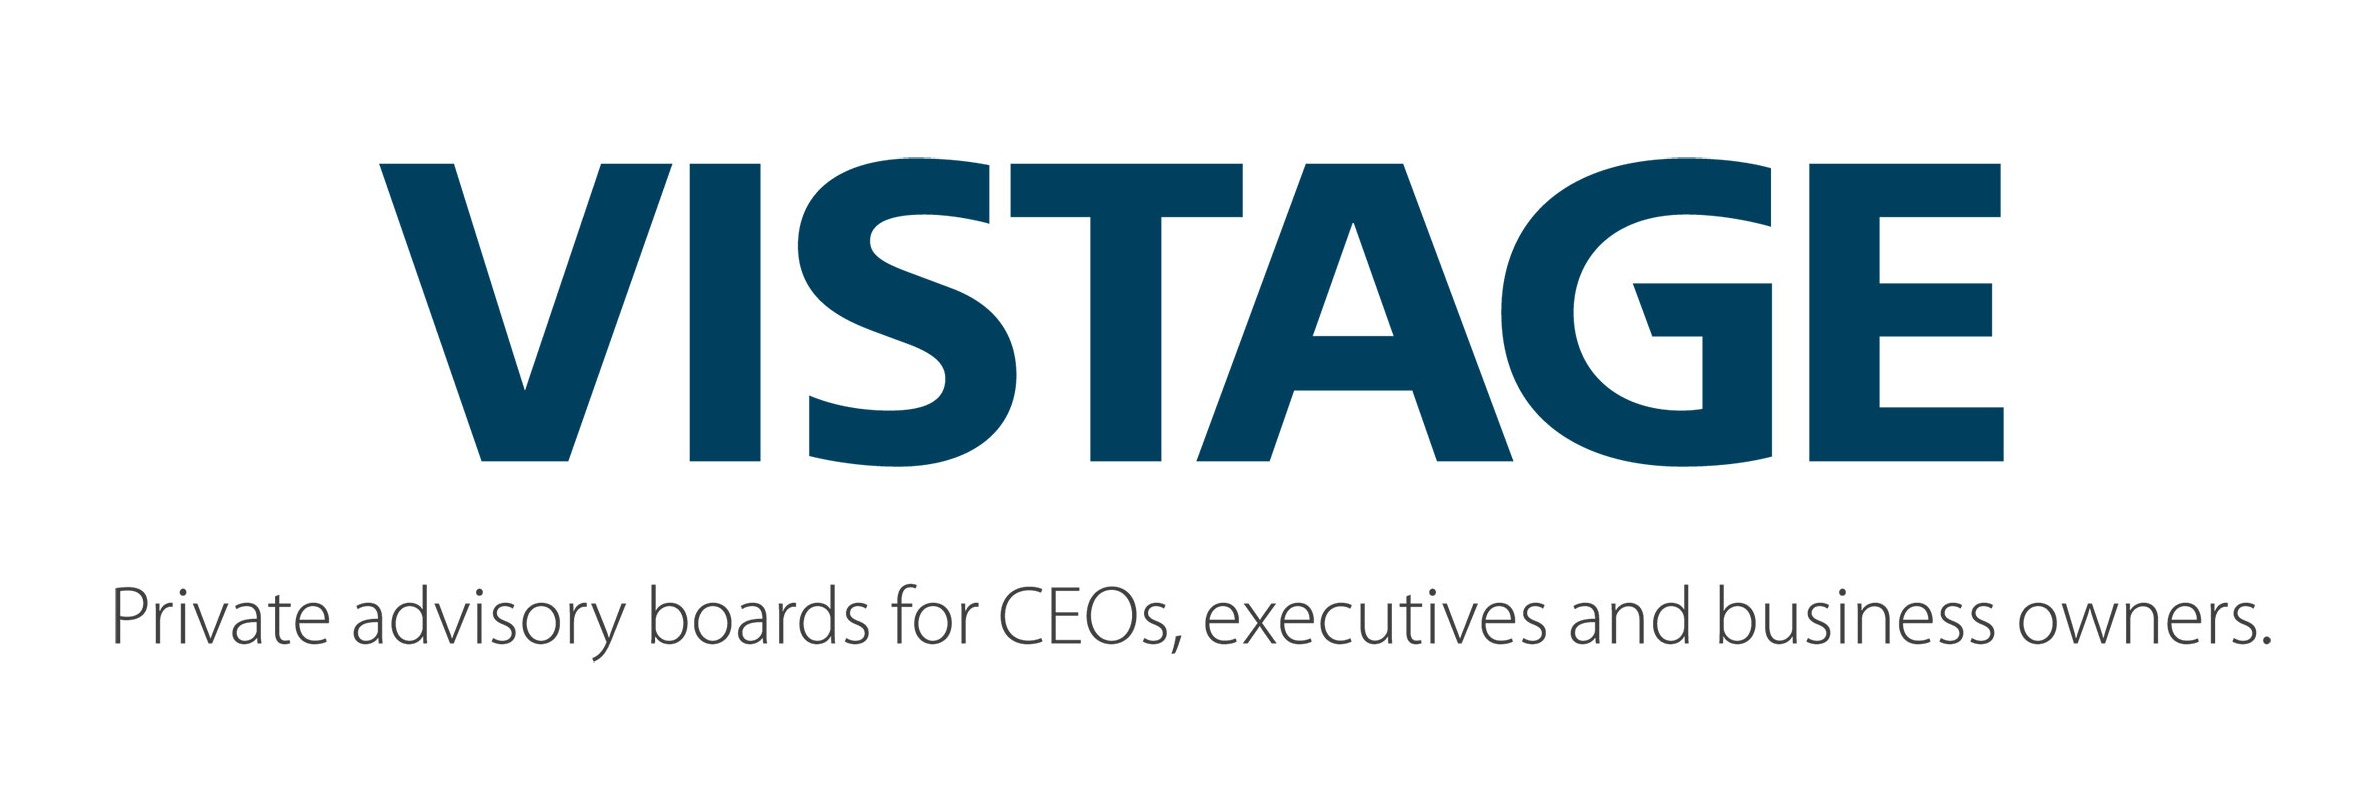 vistage-private-advisory-boards-for-ceos-executives-and-business-owners-2.jpg